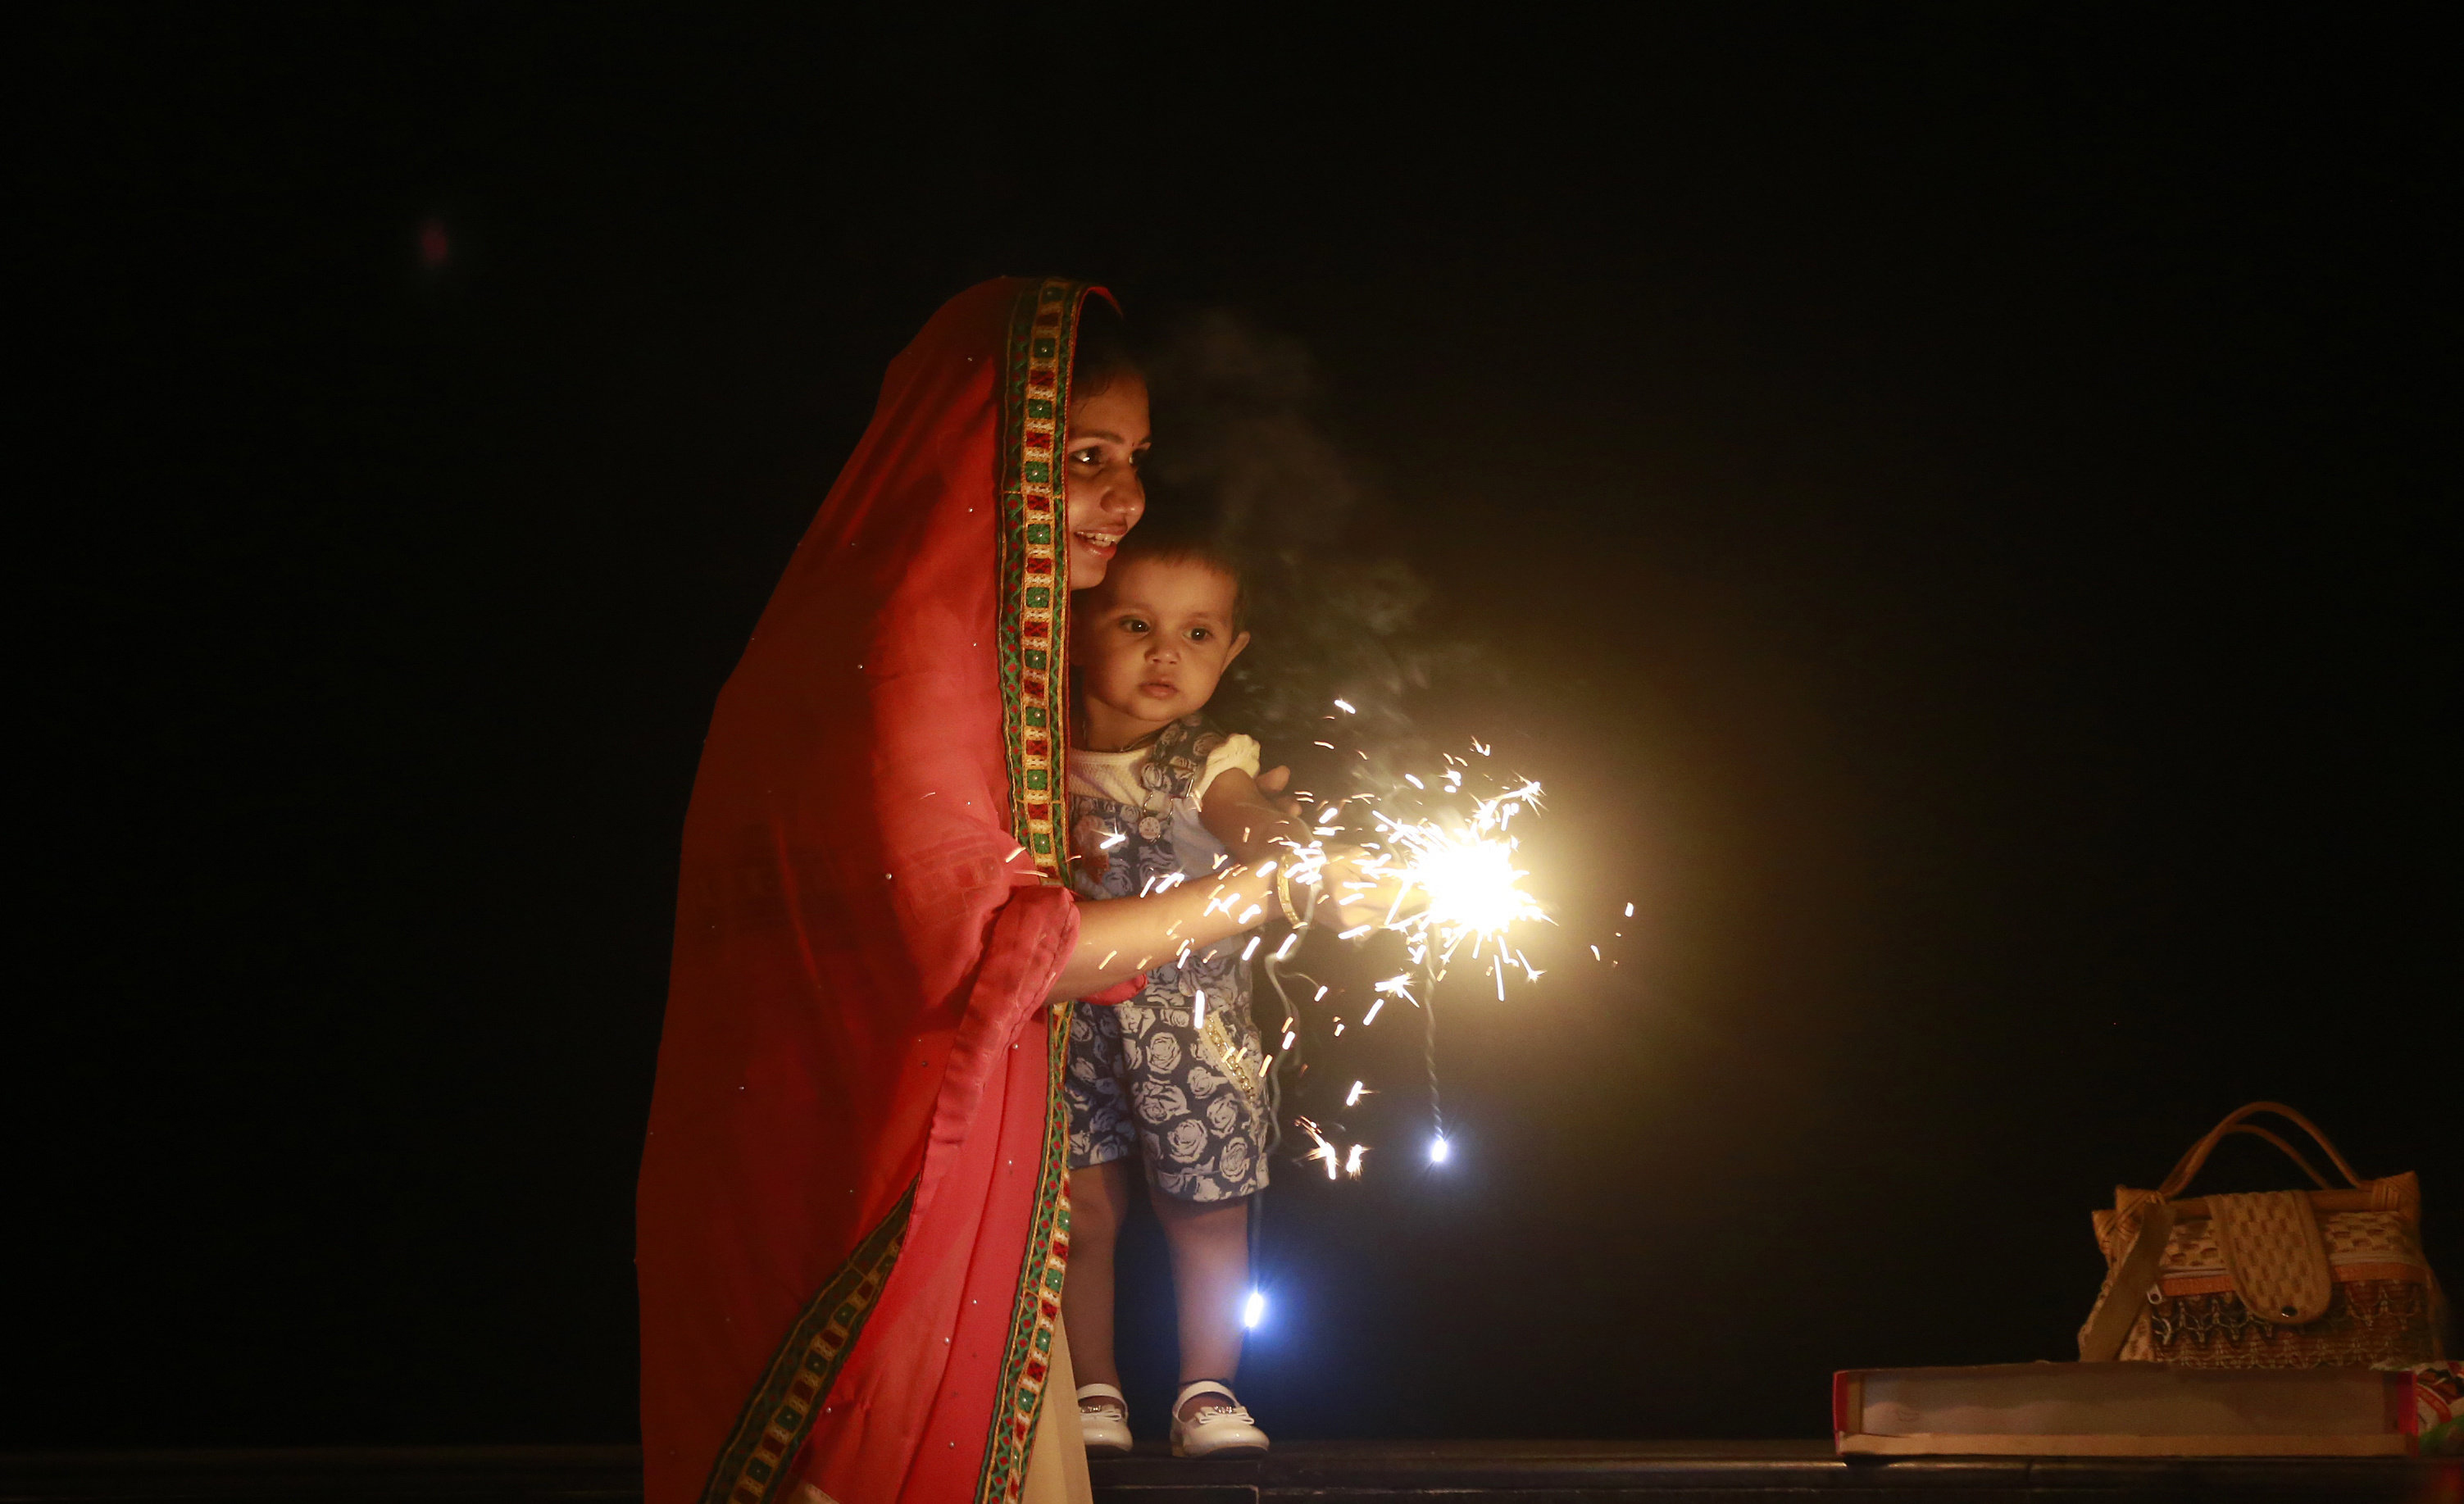 A Hindu woman lights a firecrackers with her daughter to celebrate Diwali, the Hindu festival of lights, in Mumbai, India